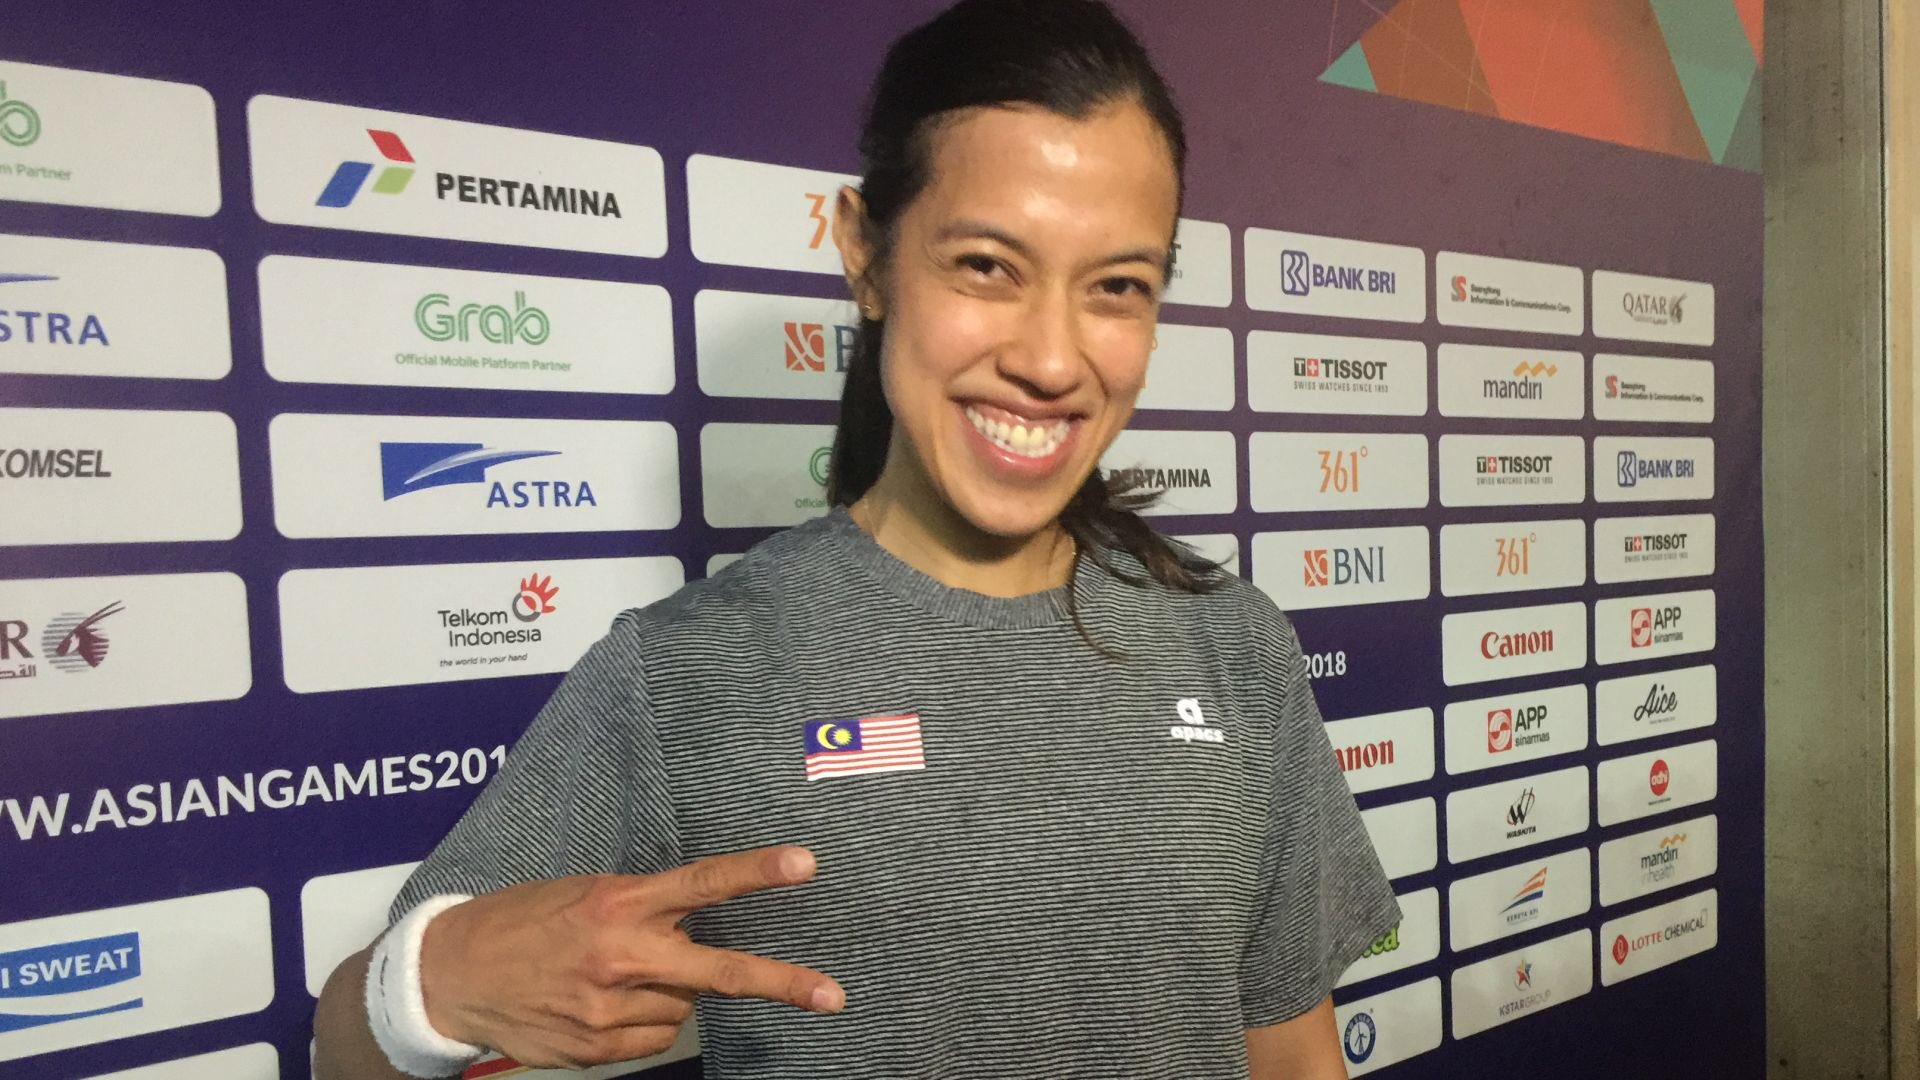 Happy birthday @NicolDavid ! Hard fought @asiangames2018 gold medal for a memorable birthday gift. Wish you nothing but the best my friend. https://t.co/SyYt4Ippnq